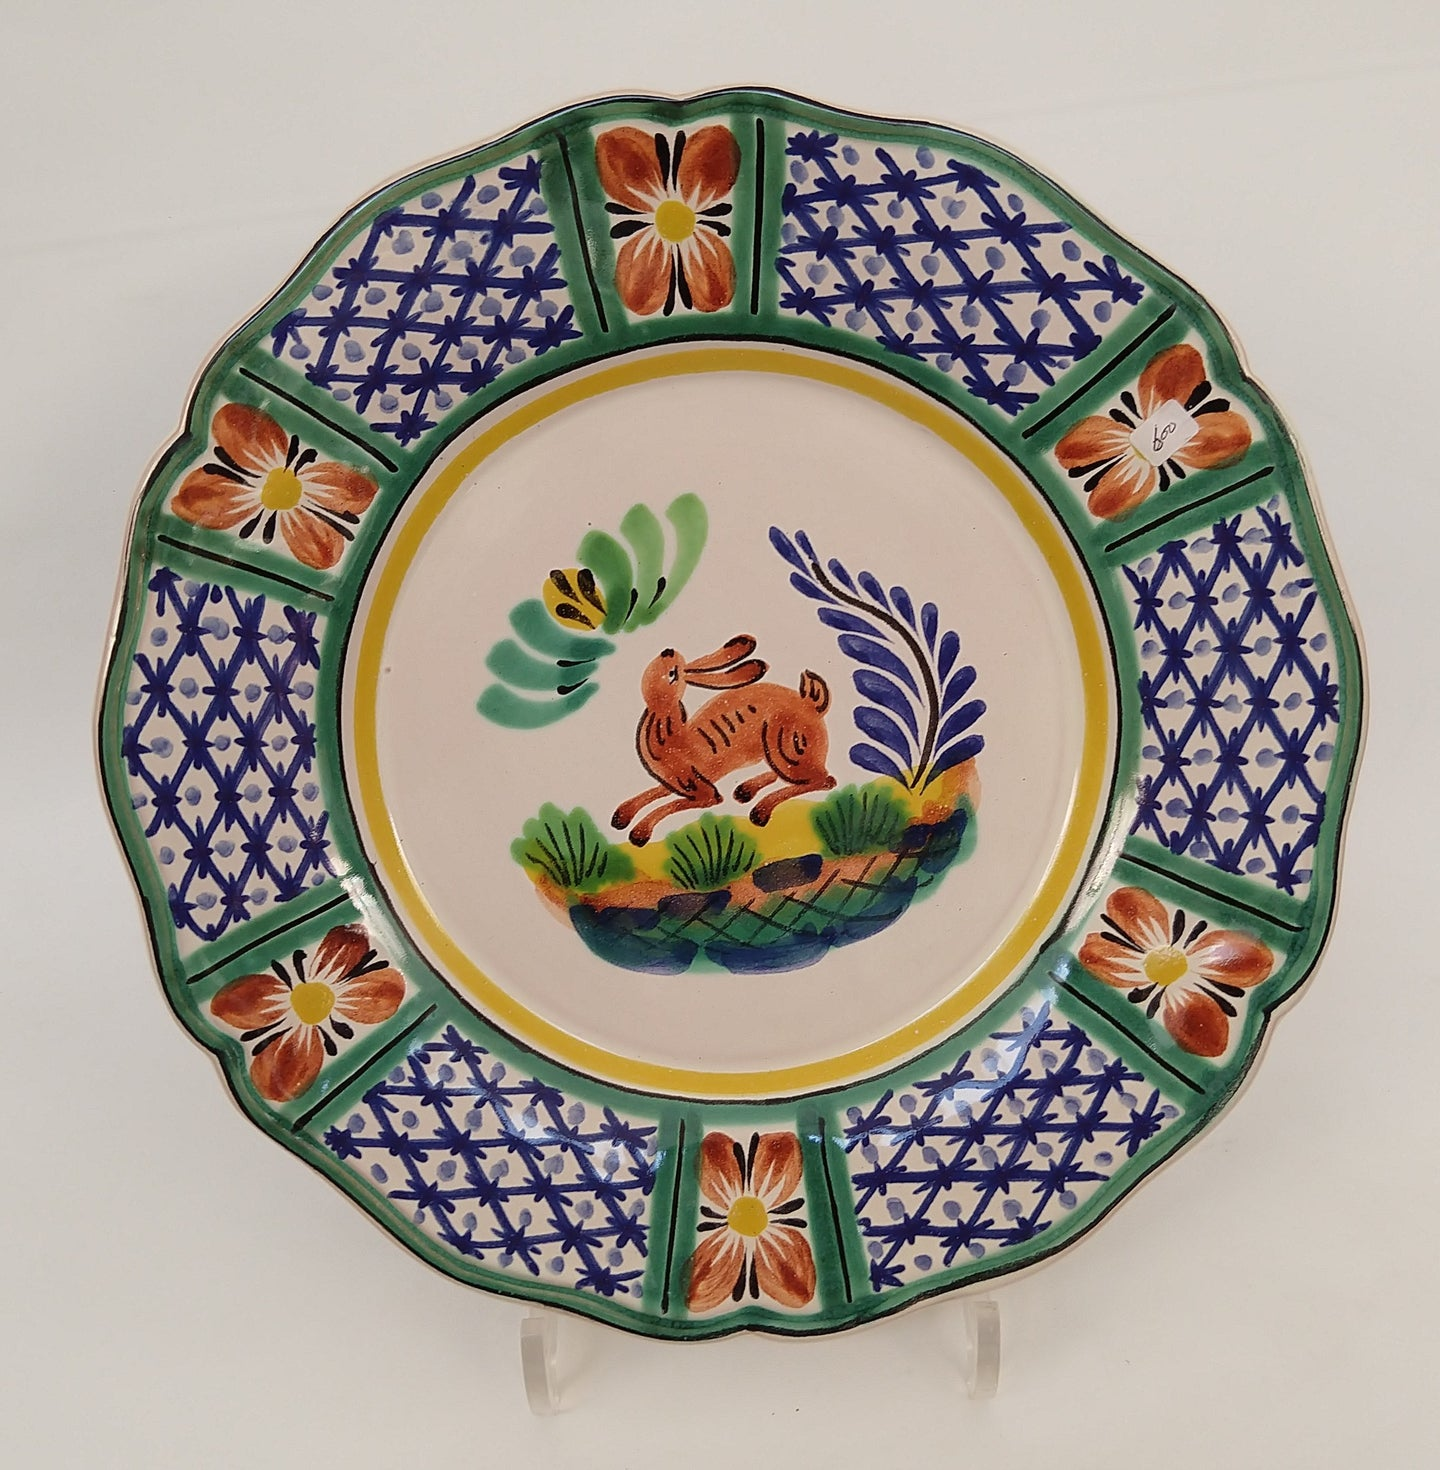 Rabbit Flower Shape Dinner Plate 11